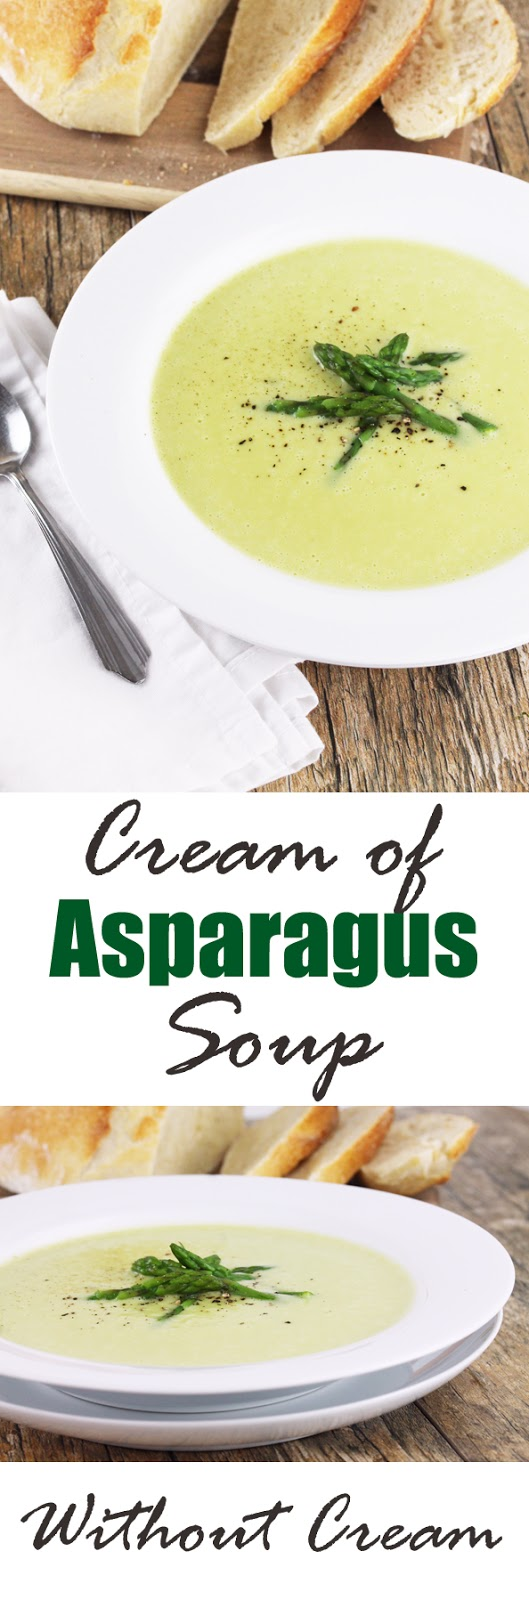 Cream of Asparagus Soup (Without Cream)